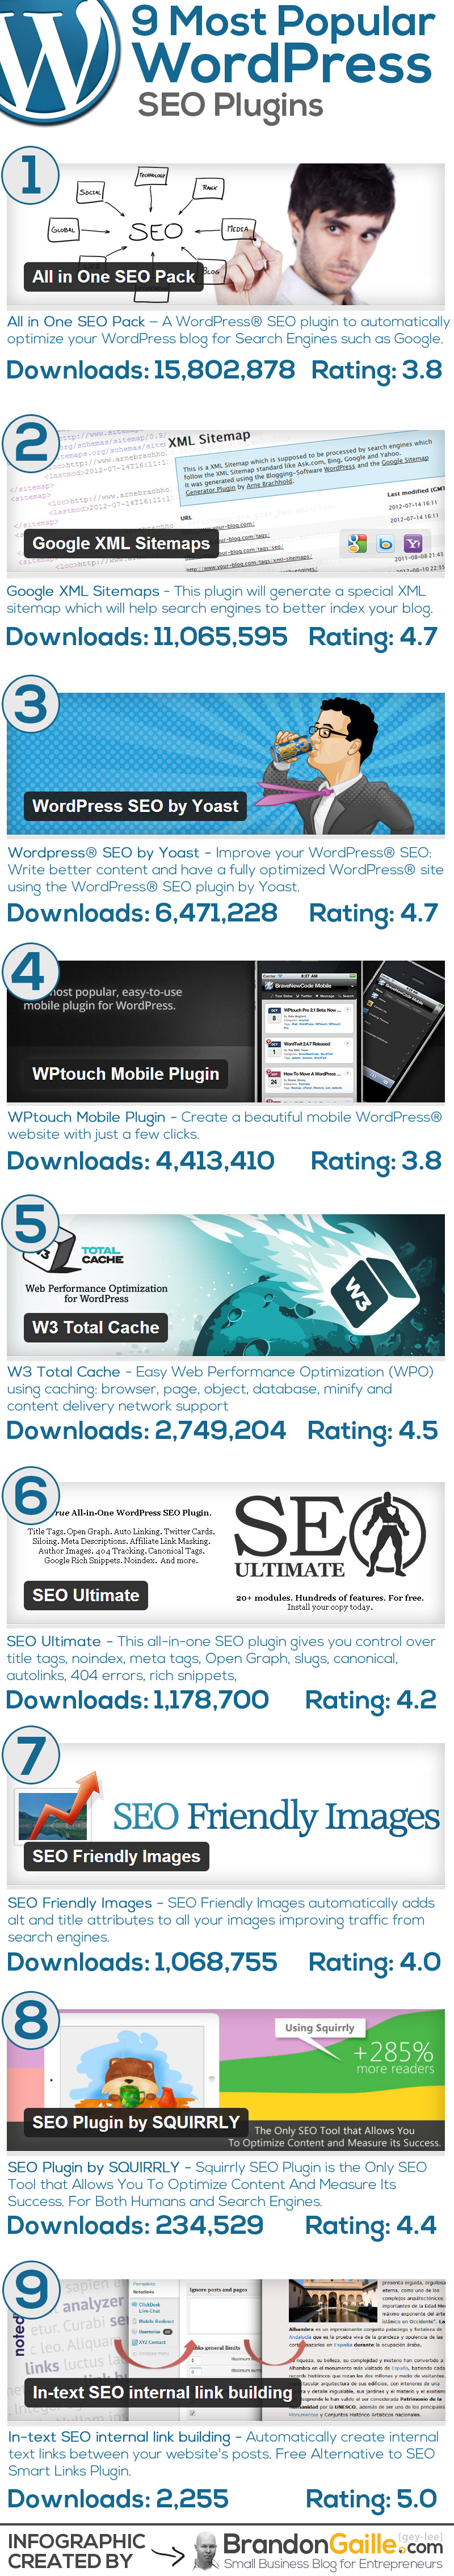 Best Wordpress SEO Plugins Infographic 9 Best Wordpress SEO Plugins